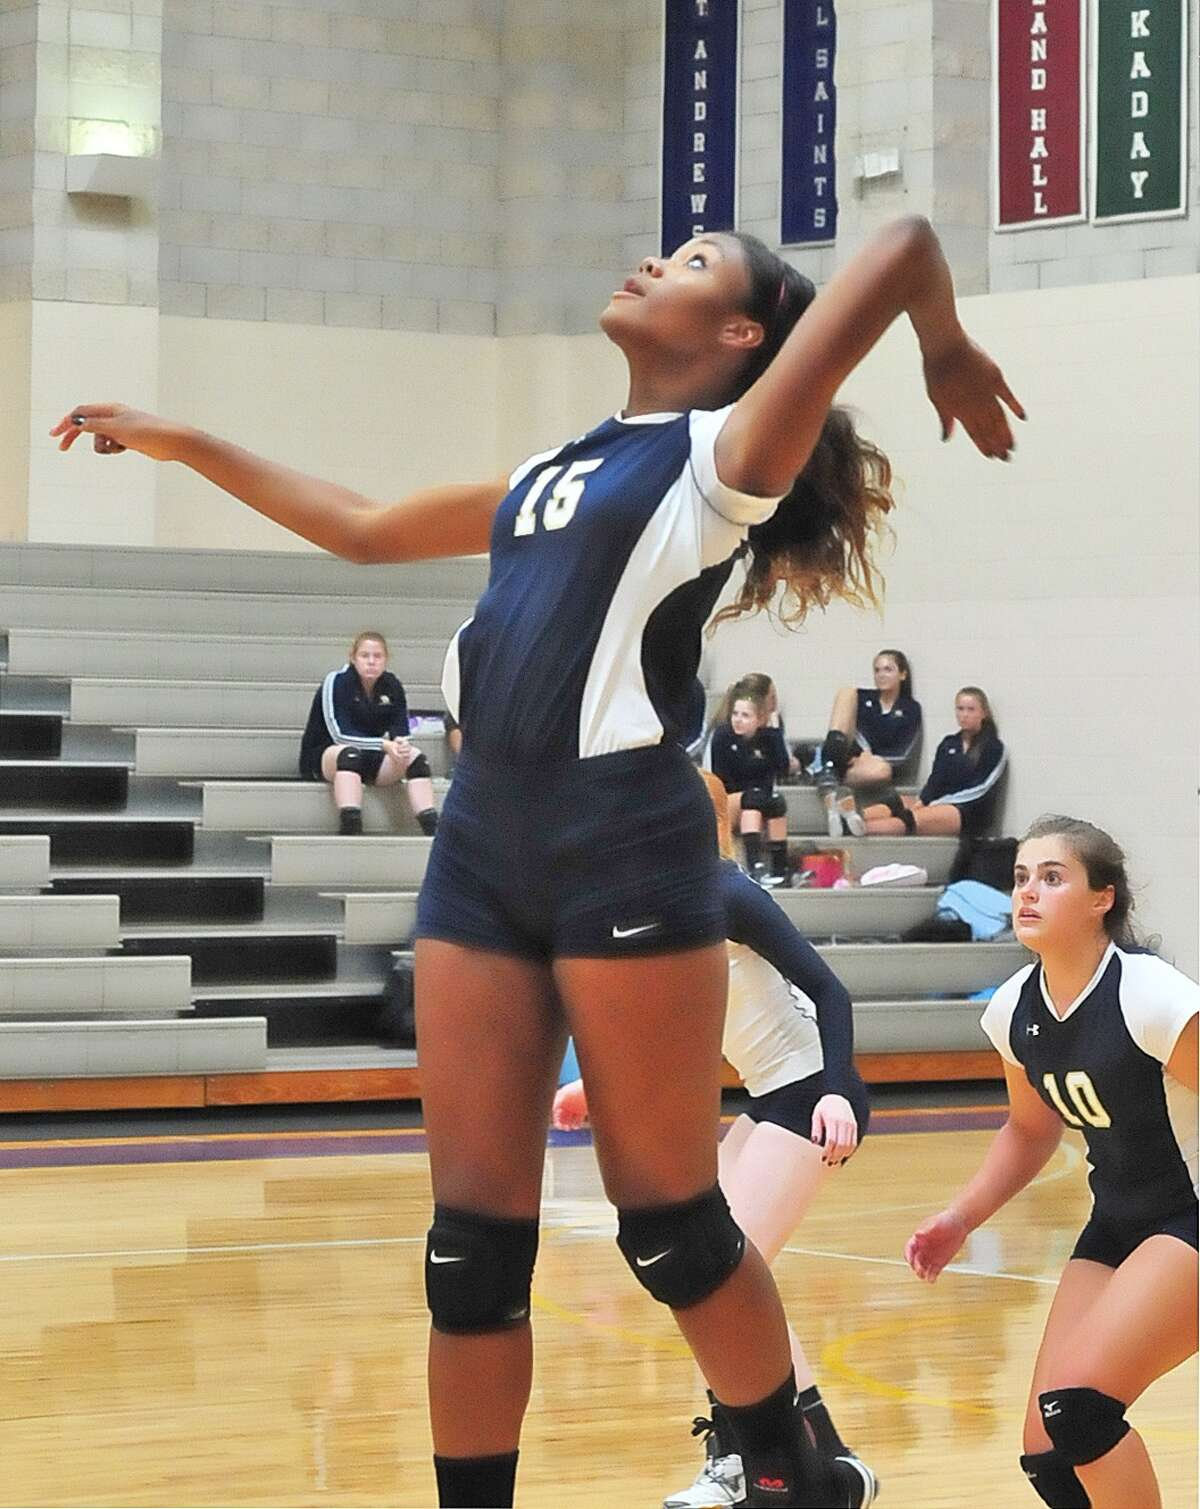 Kelsey Chambers (#15) competes for Second Baptist during their game at Kinkaid Tuesday 8/20/13. At right is Haley Caron (#10).